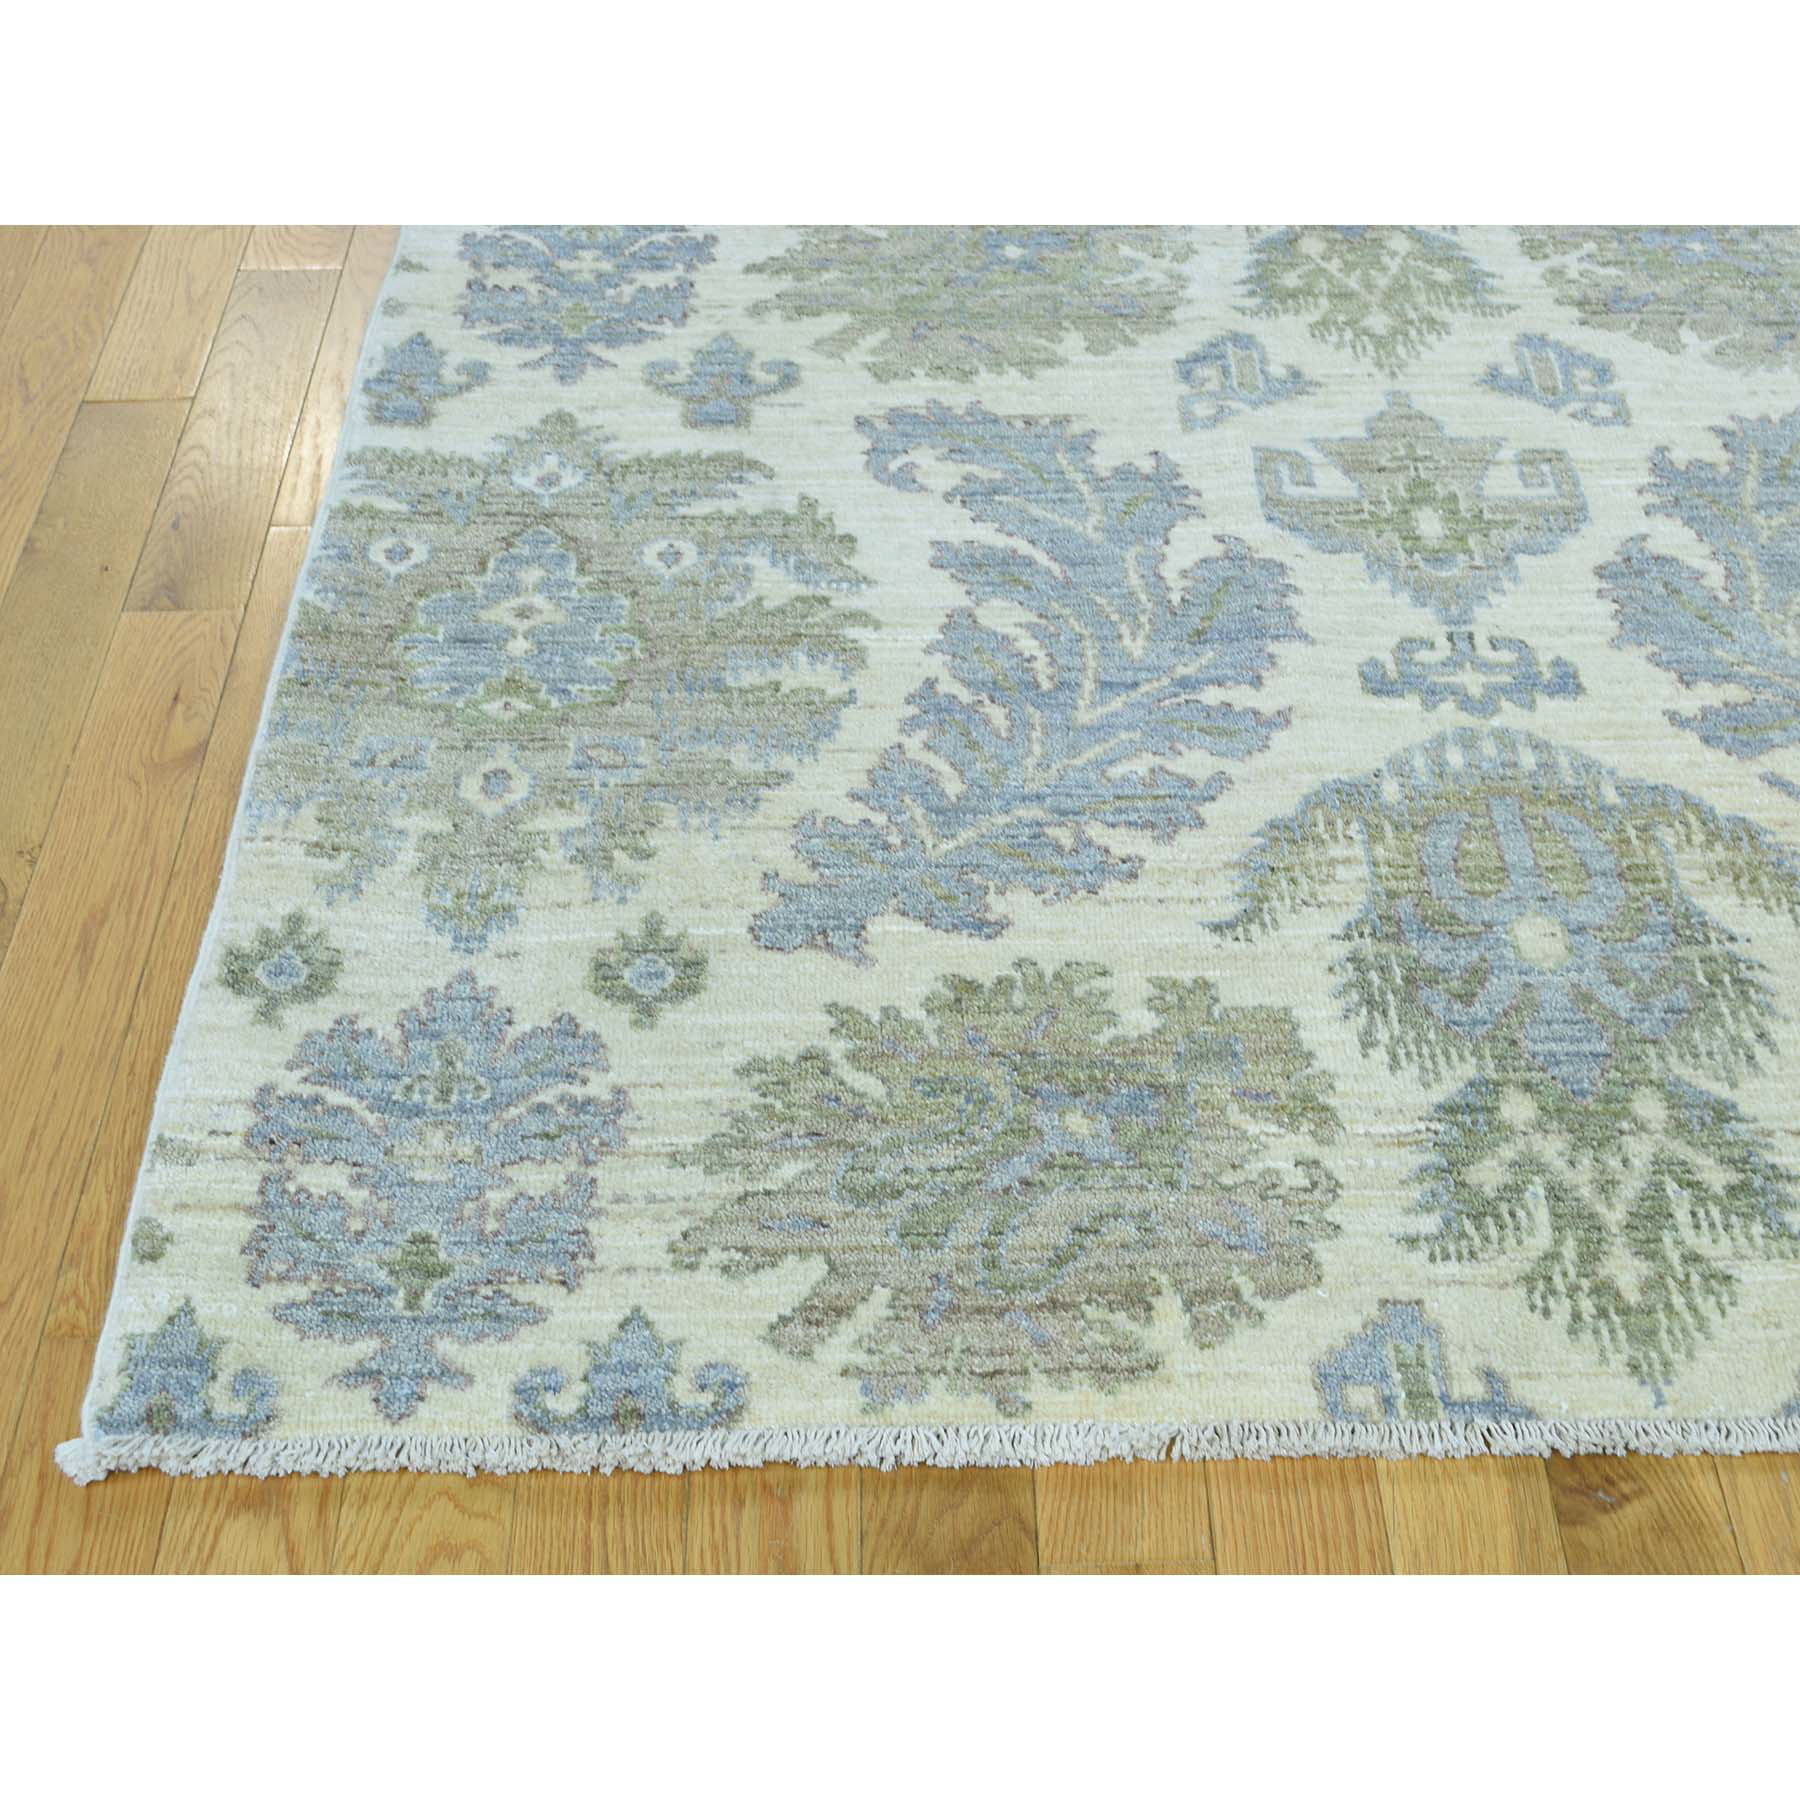 9-1 x12- Hand-Knotted Peshawar With Leaf Design Pure Wool Oriental Rug